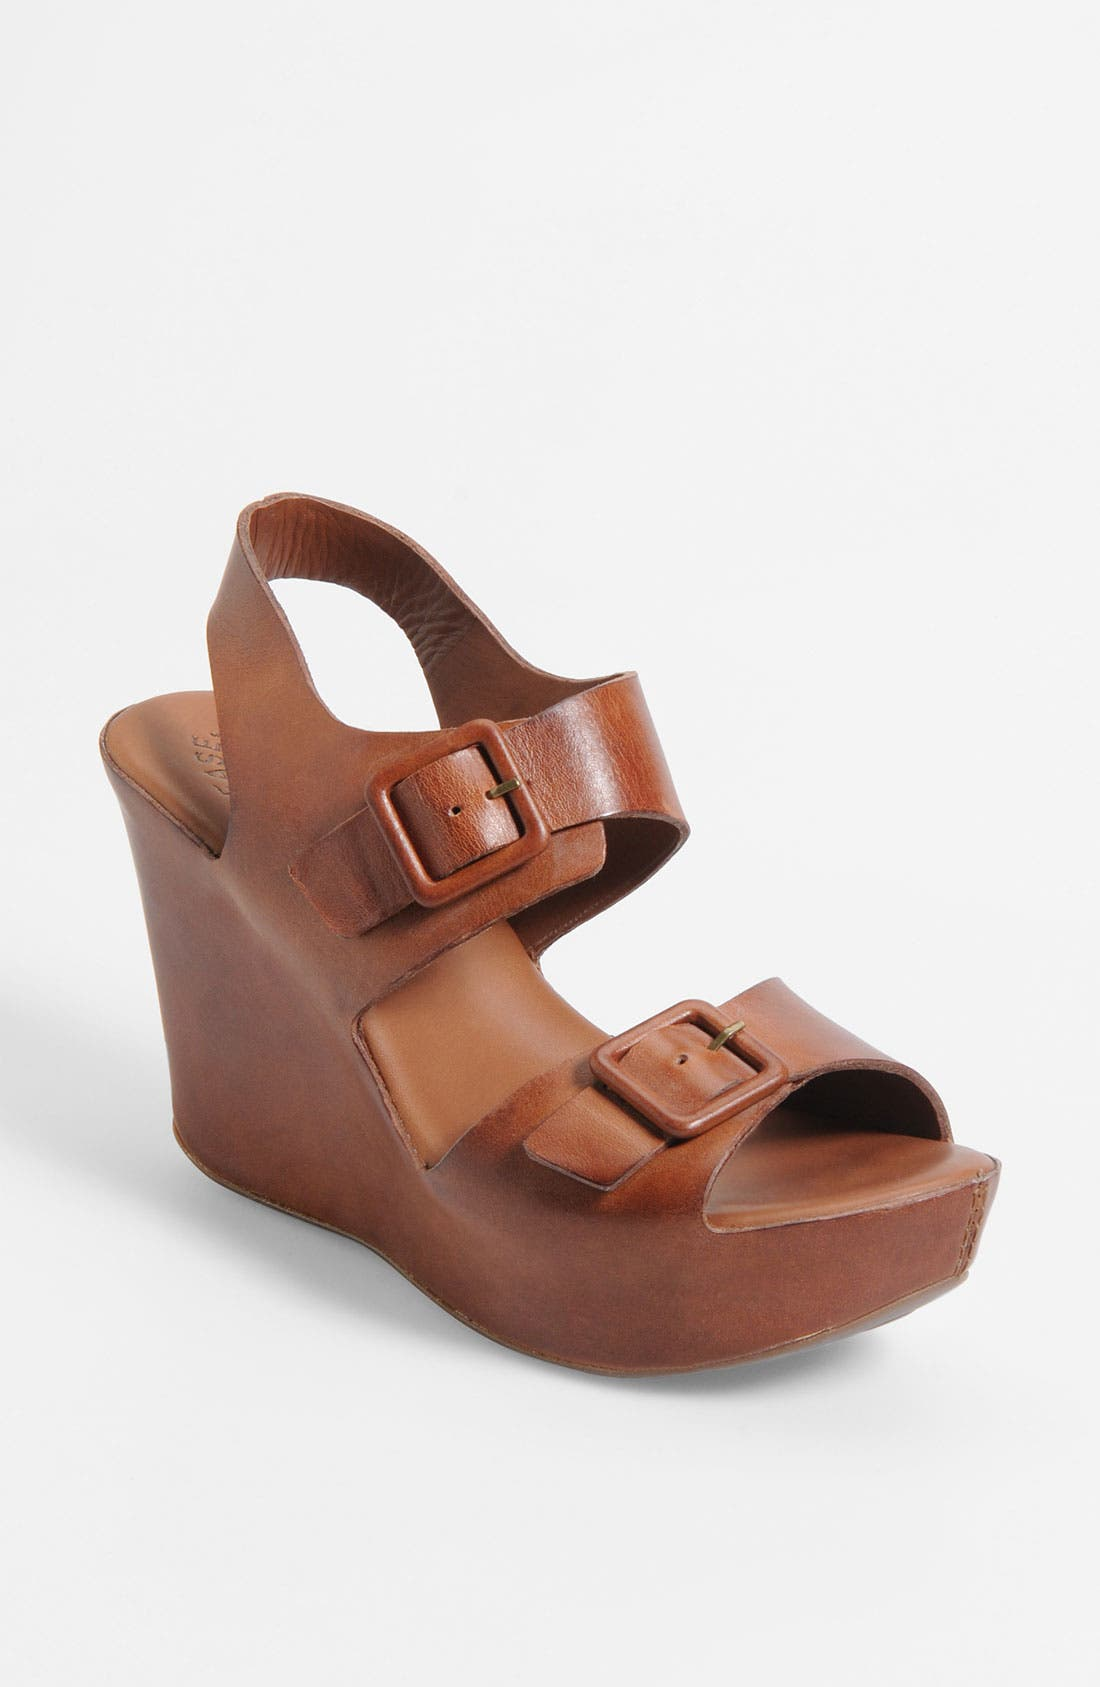 Main Image - Kork-Ease 'Susie' Wedge Sandal